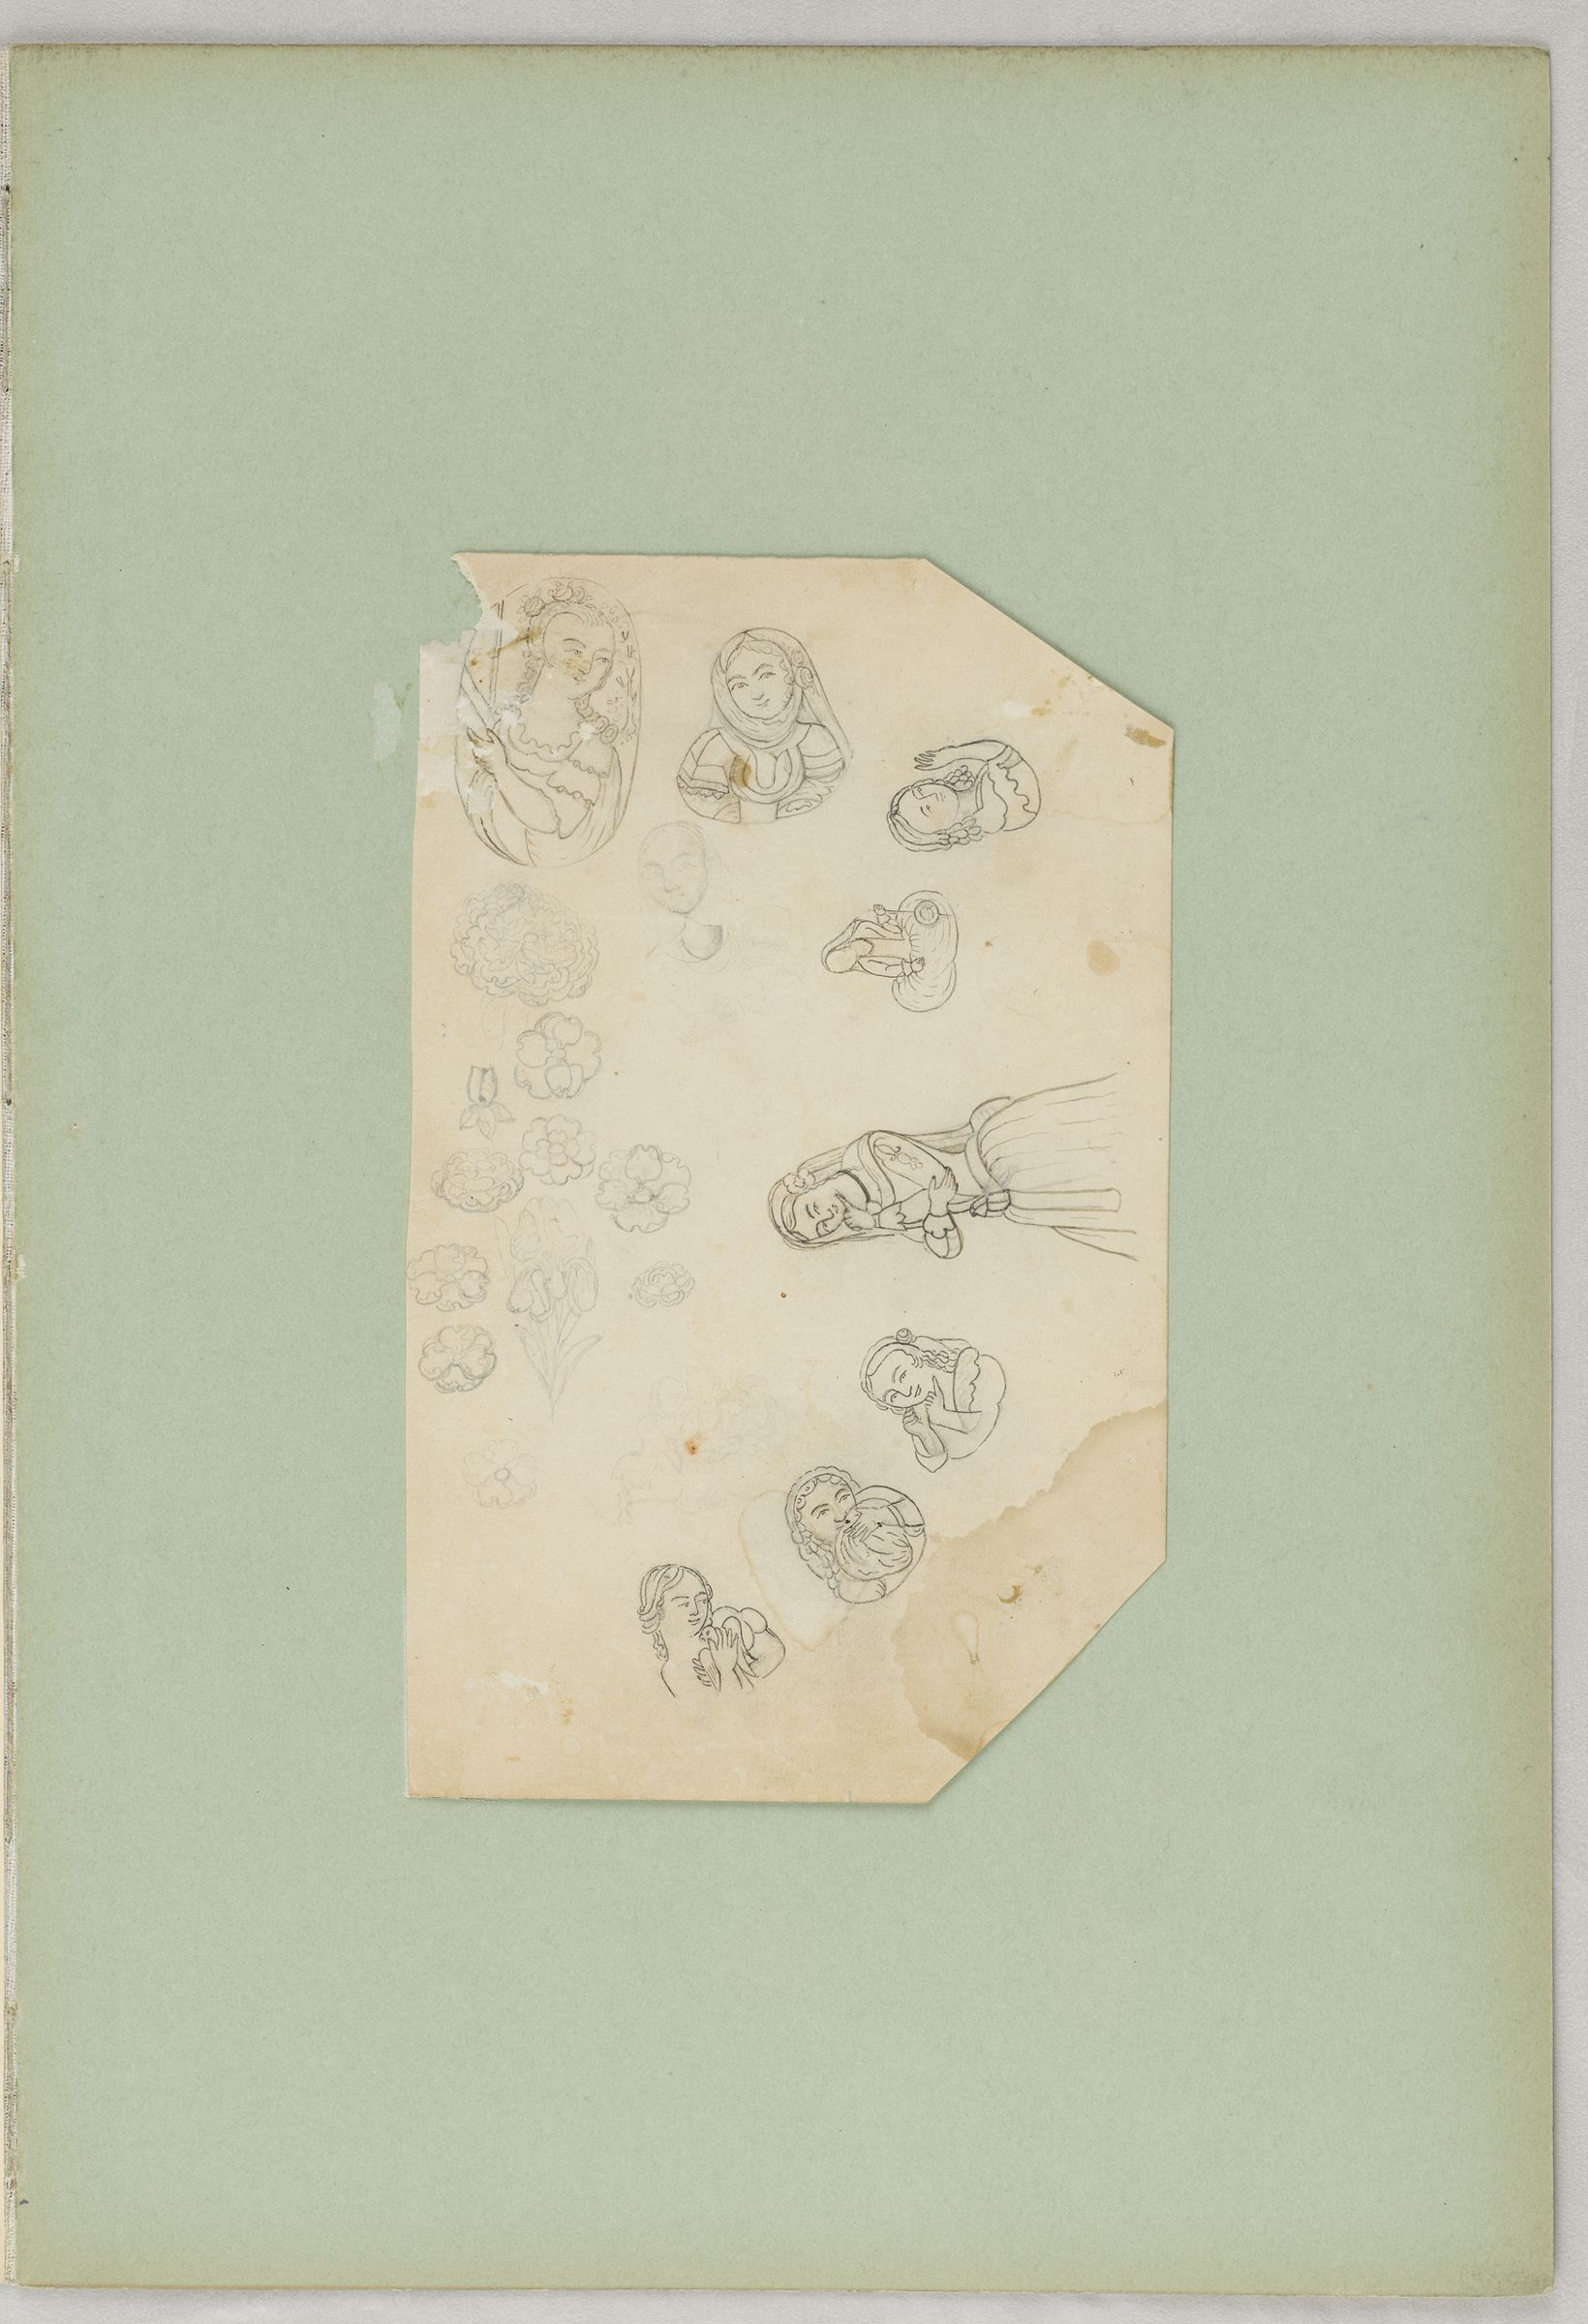 Folio 21 From An Album Of Artists' Drawings From Qajar Iran: Three Drawings Of Figures In European Dress (Recto); Study Sheet With Flowers And Female Portraits And Figures (Verso)